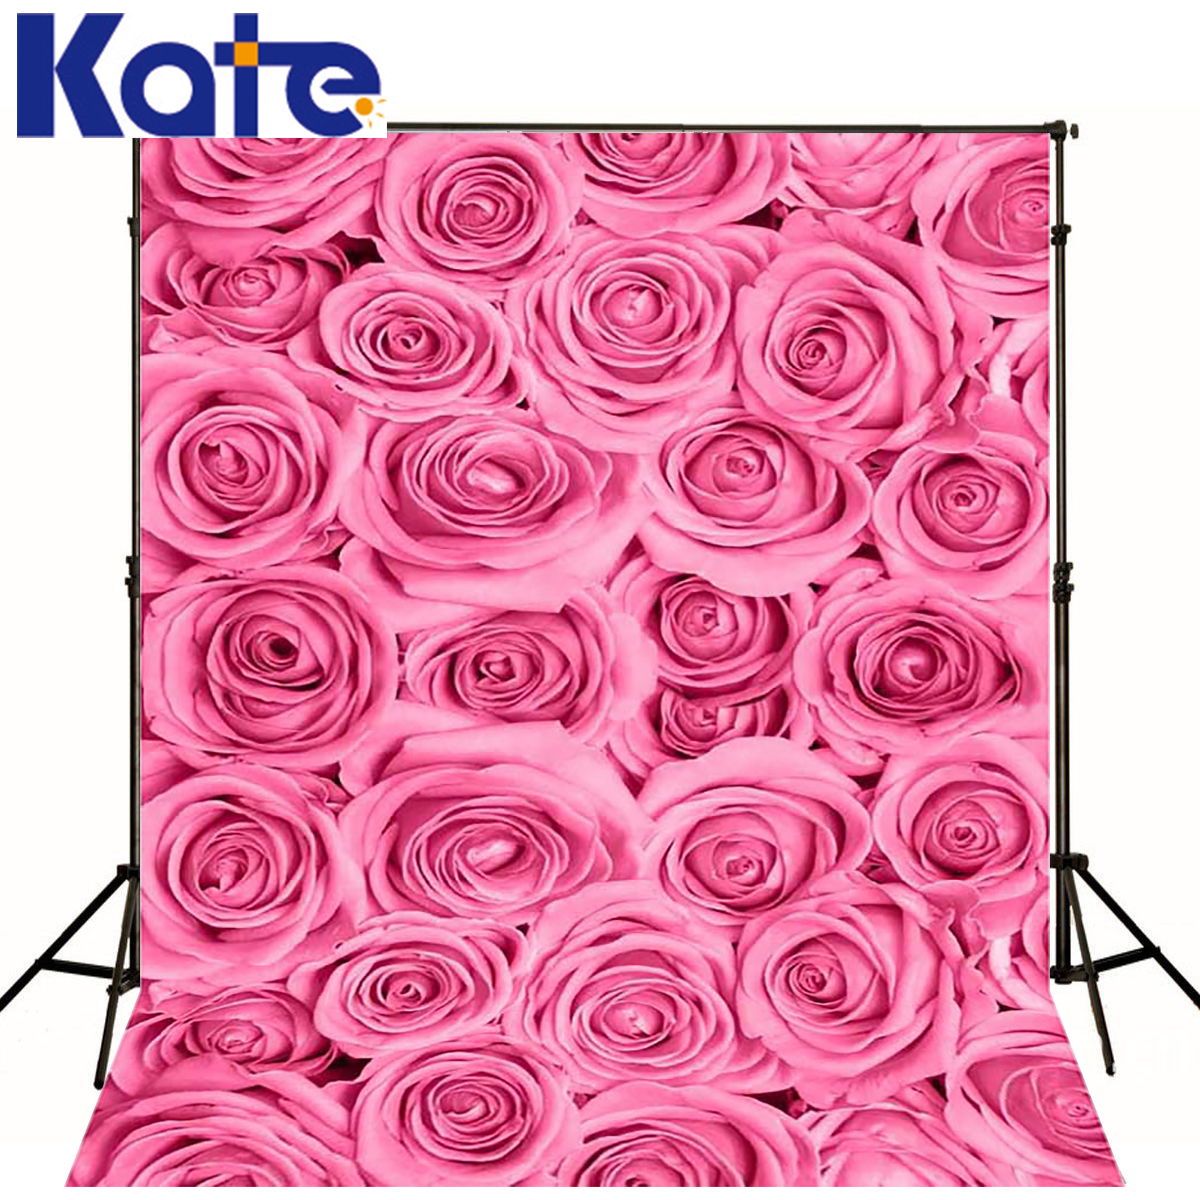 Kate baby Photography Backdrops 3D Pattern Backdrop Baby Big Pink Roses photocall backgrounds for Photo Studio romantic Backdrop 8x10ft valentine s day photography pink love heart shape adult portrait backdrop d 7324